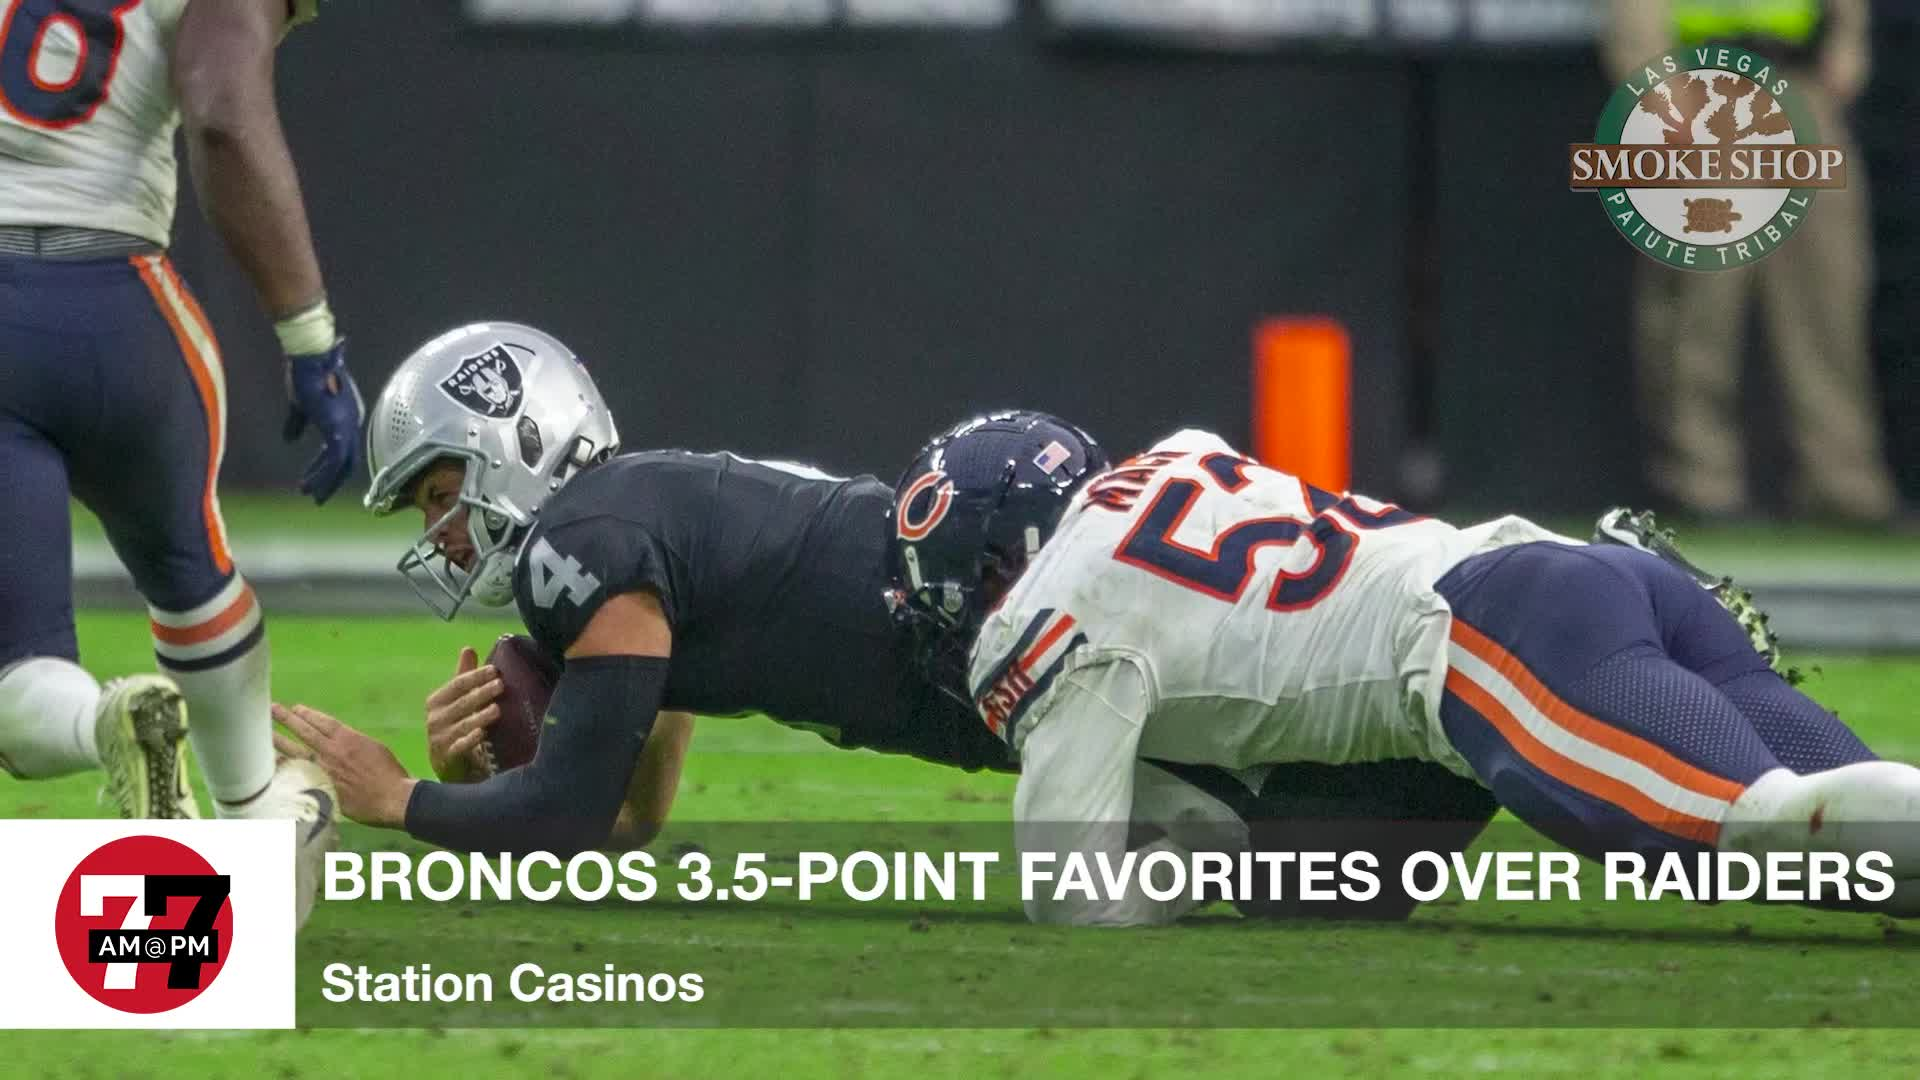 7@7PM Broncos 3.5-Point Favorite Over Raiders